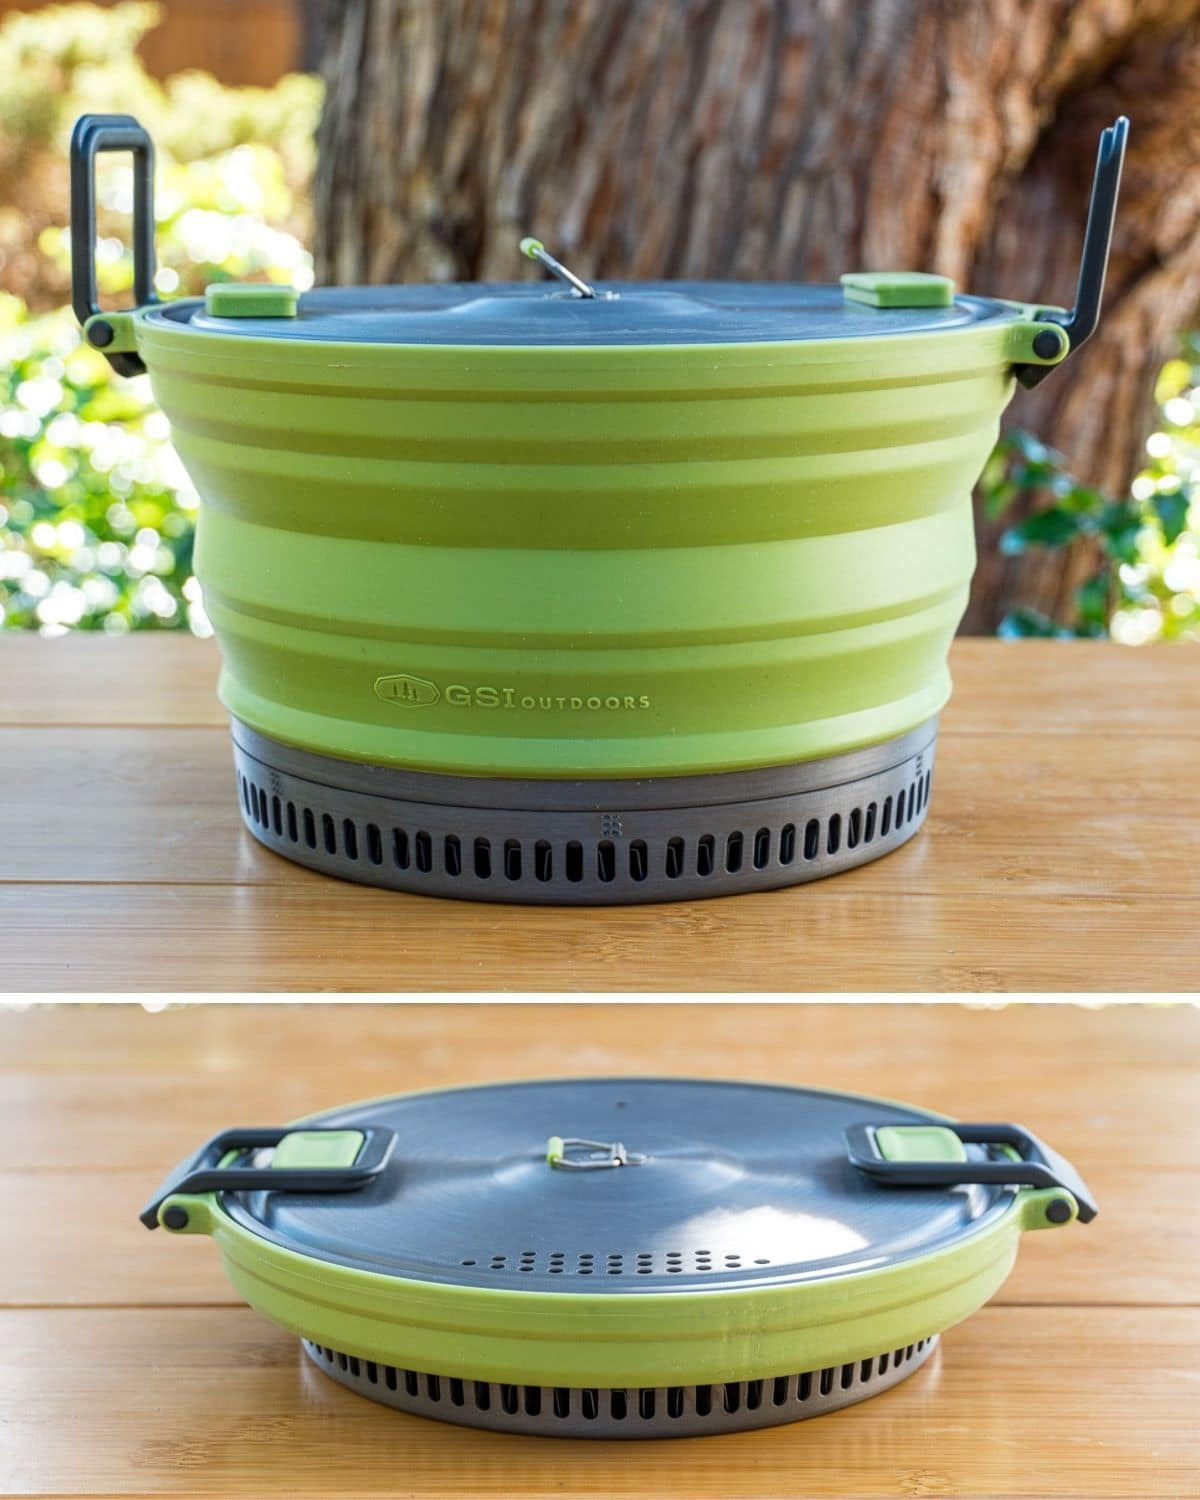 GSI Escape pot - full sized and collapsed